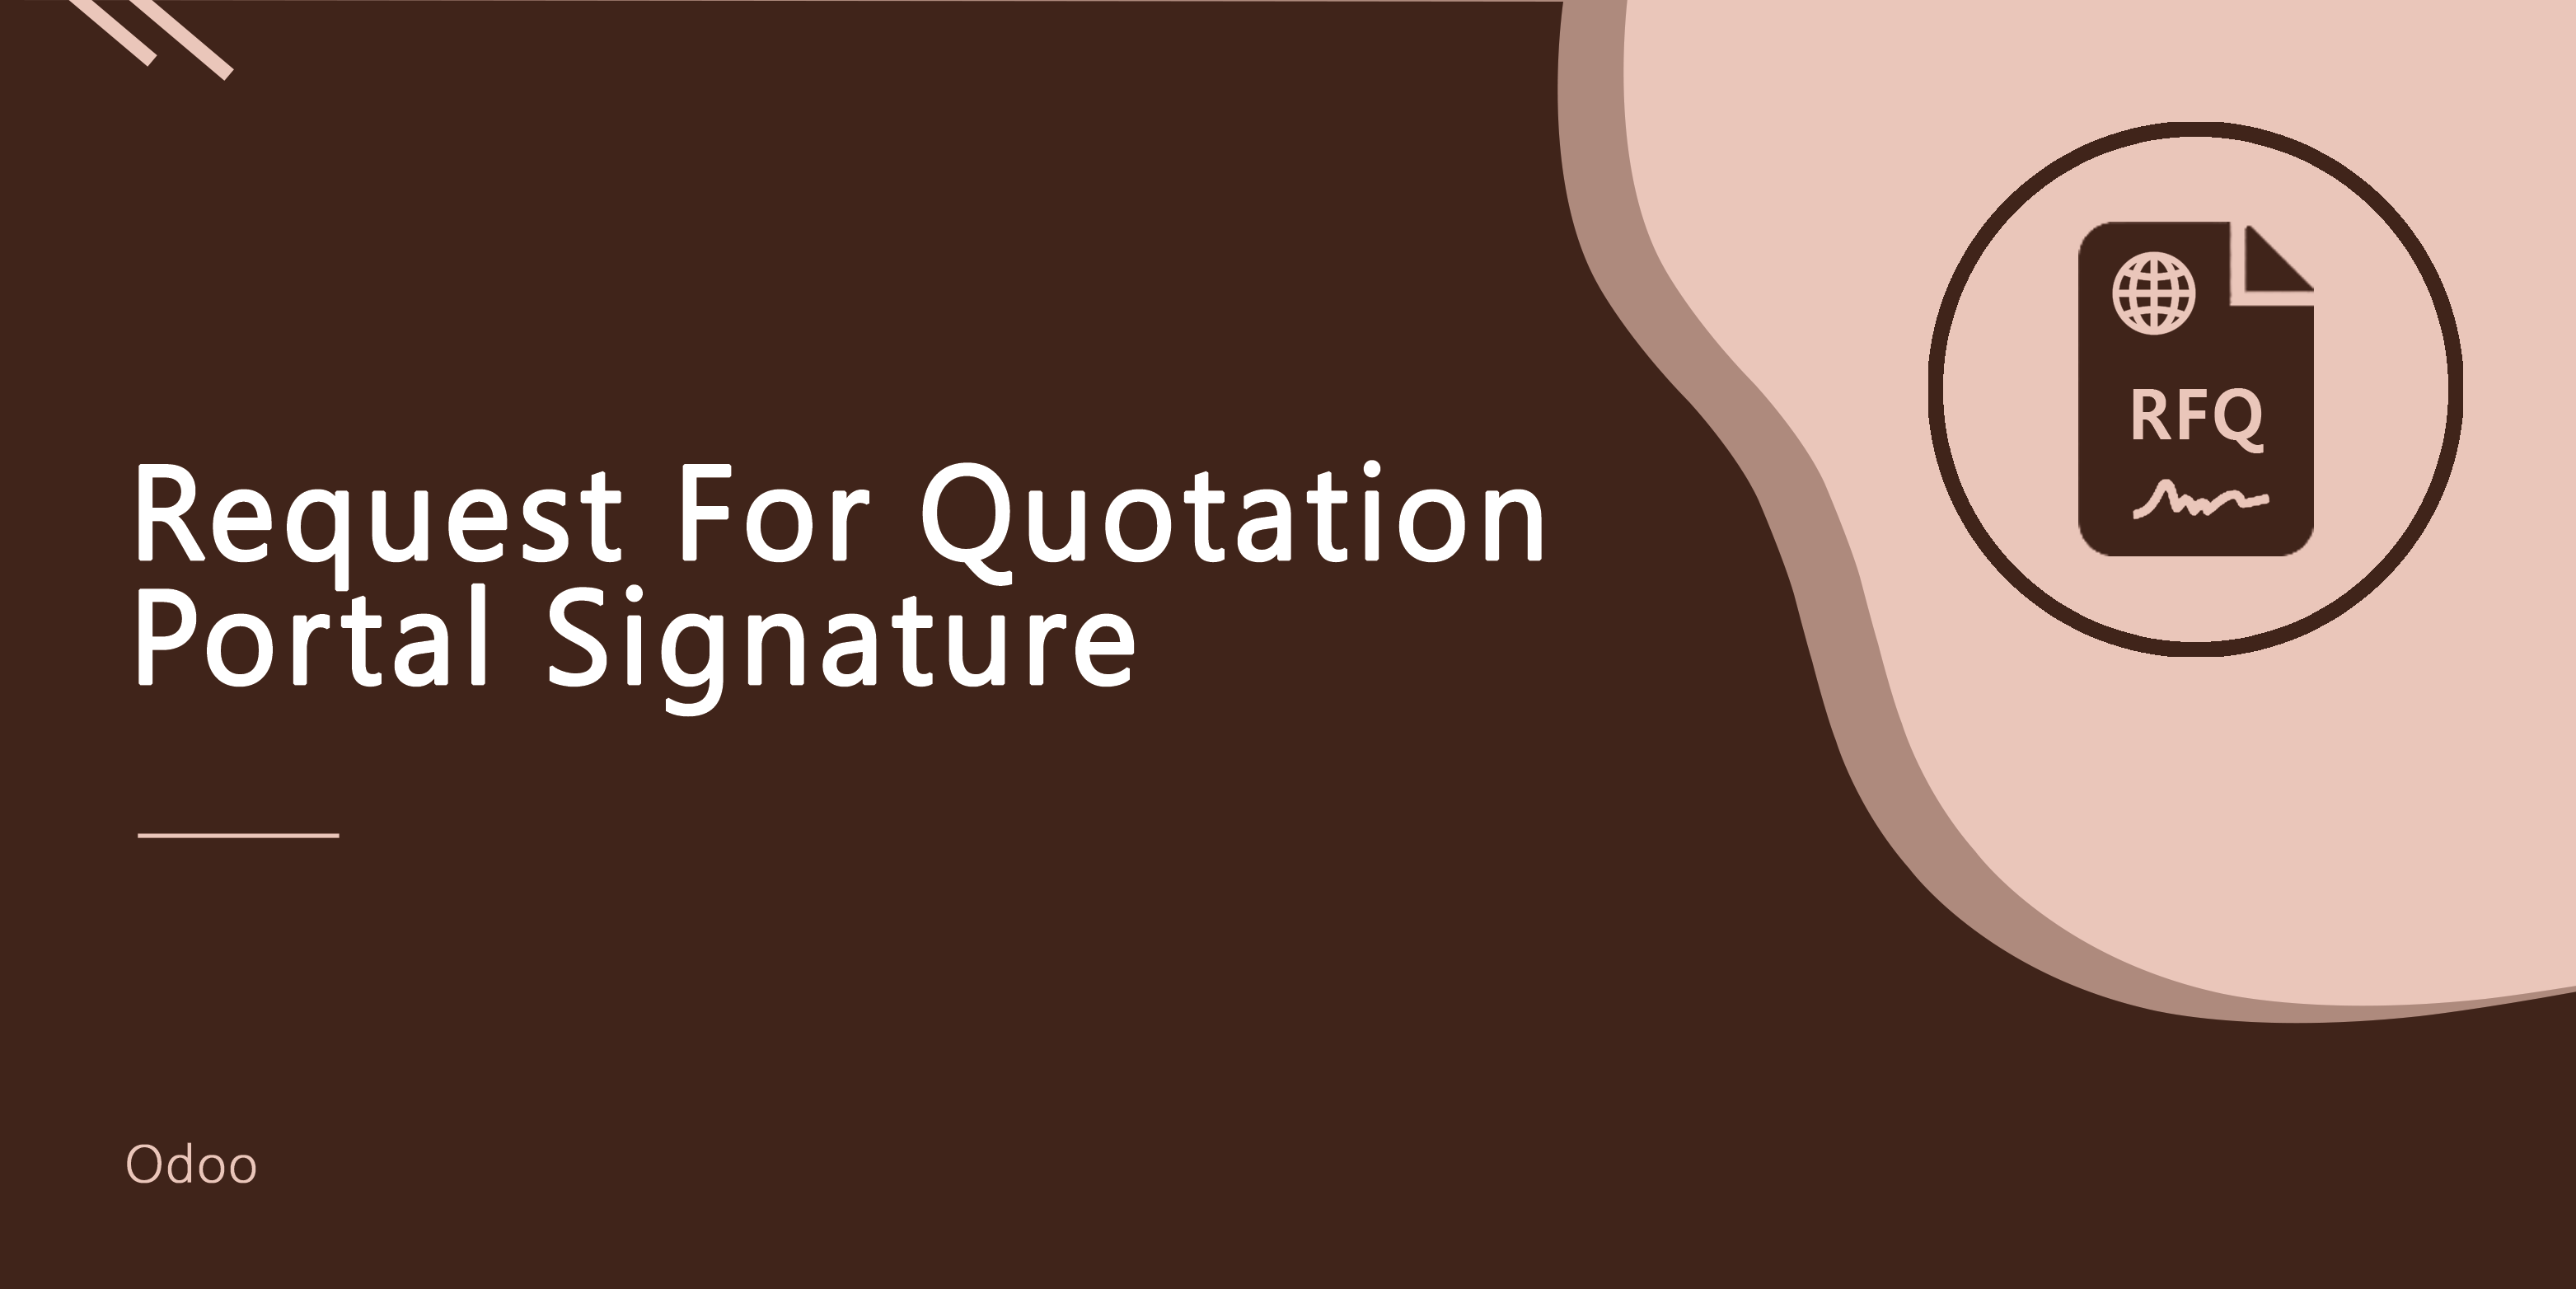 Request For Quotation Portal Signature